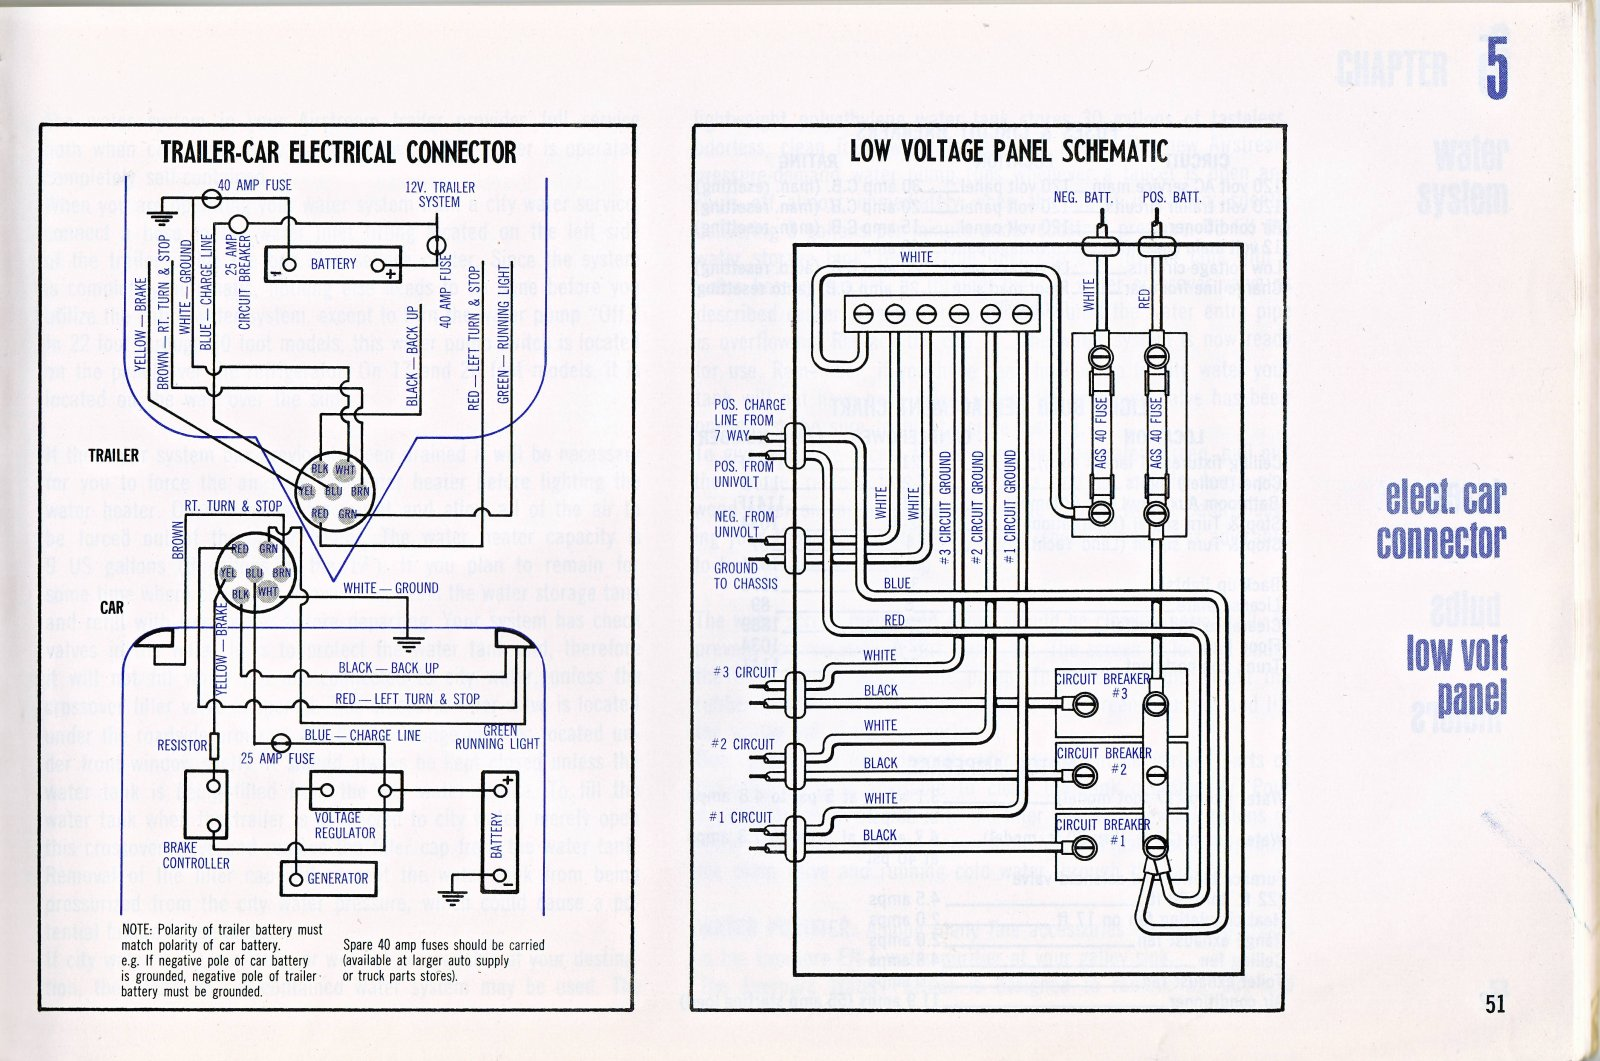 Arctic Fox Wiring Diagram Library Trailer Towbar Parts Western Towing Click Image For Larger Version Name Airstream Manual 51 Views